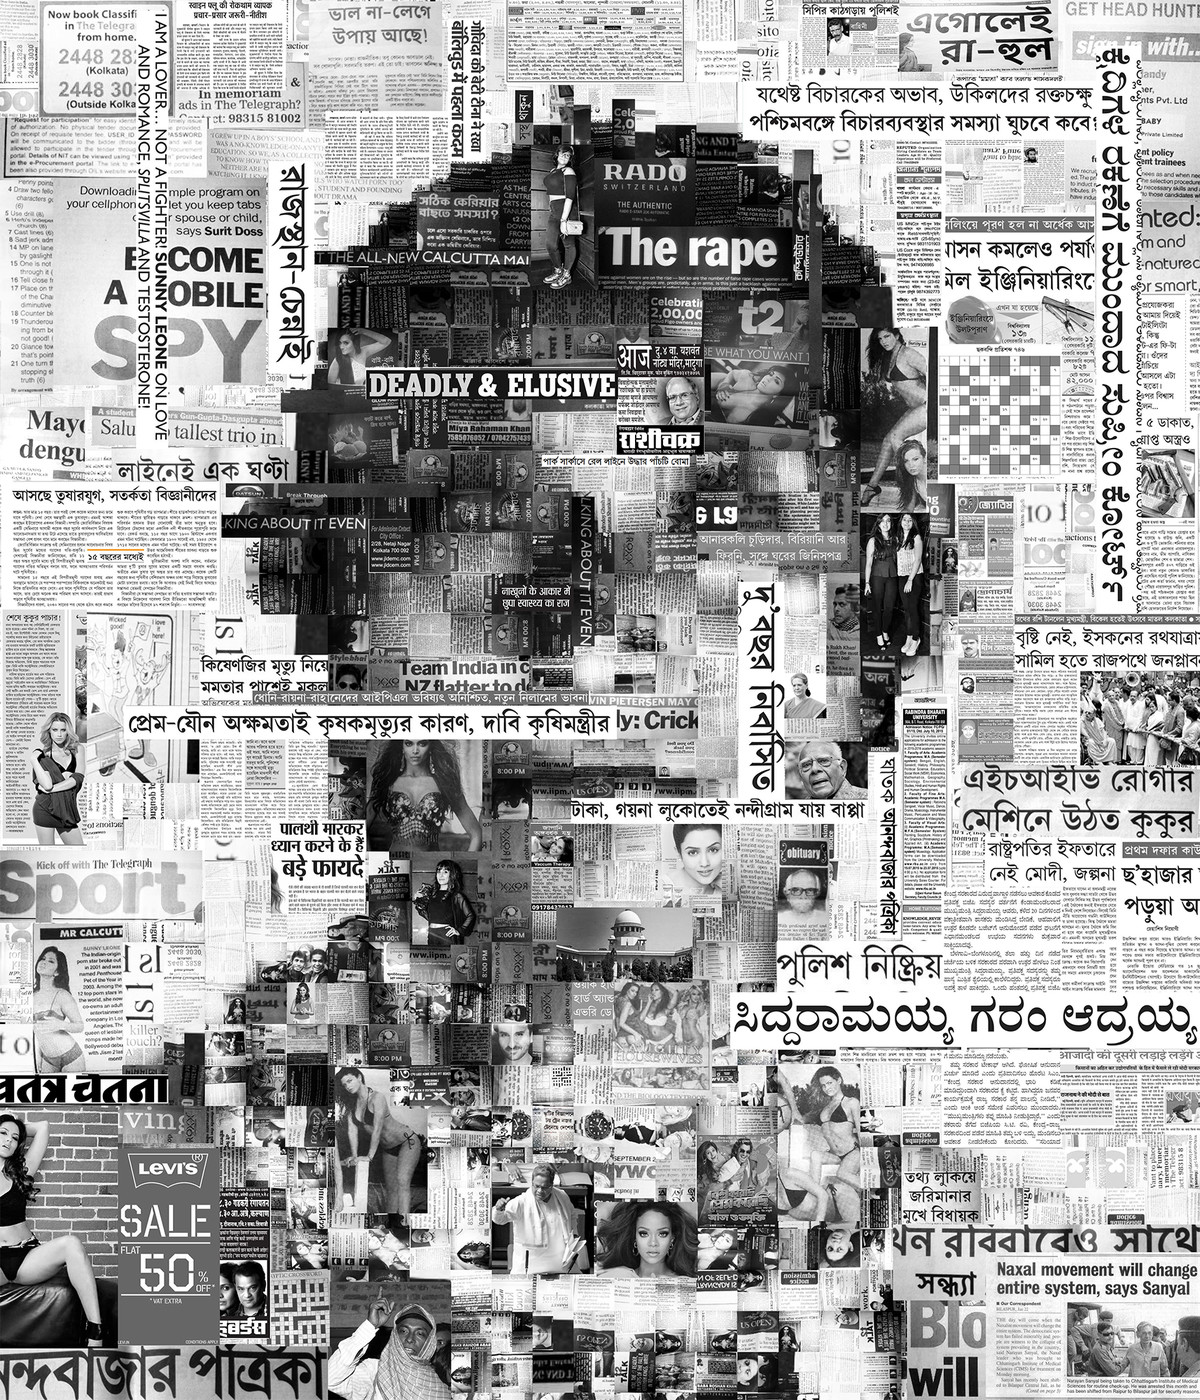 You are not in the News - 01 by Saptarshi Das, Conceptual Digital Art, Digital Print on Paper, Gray color